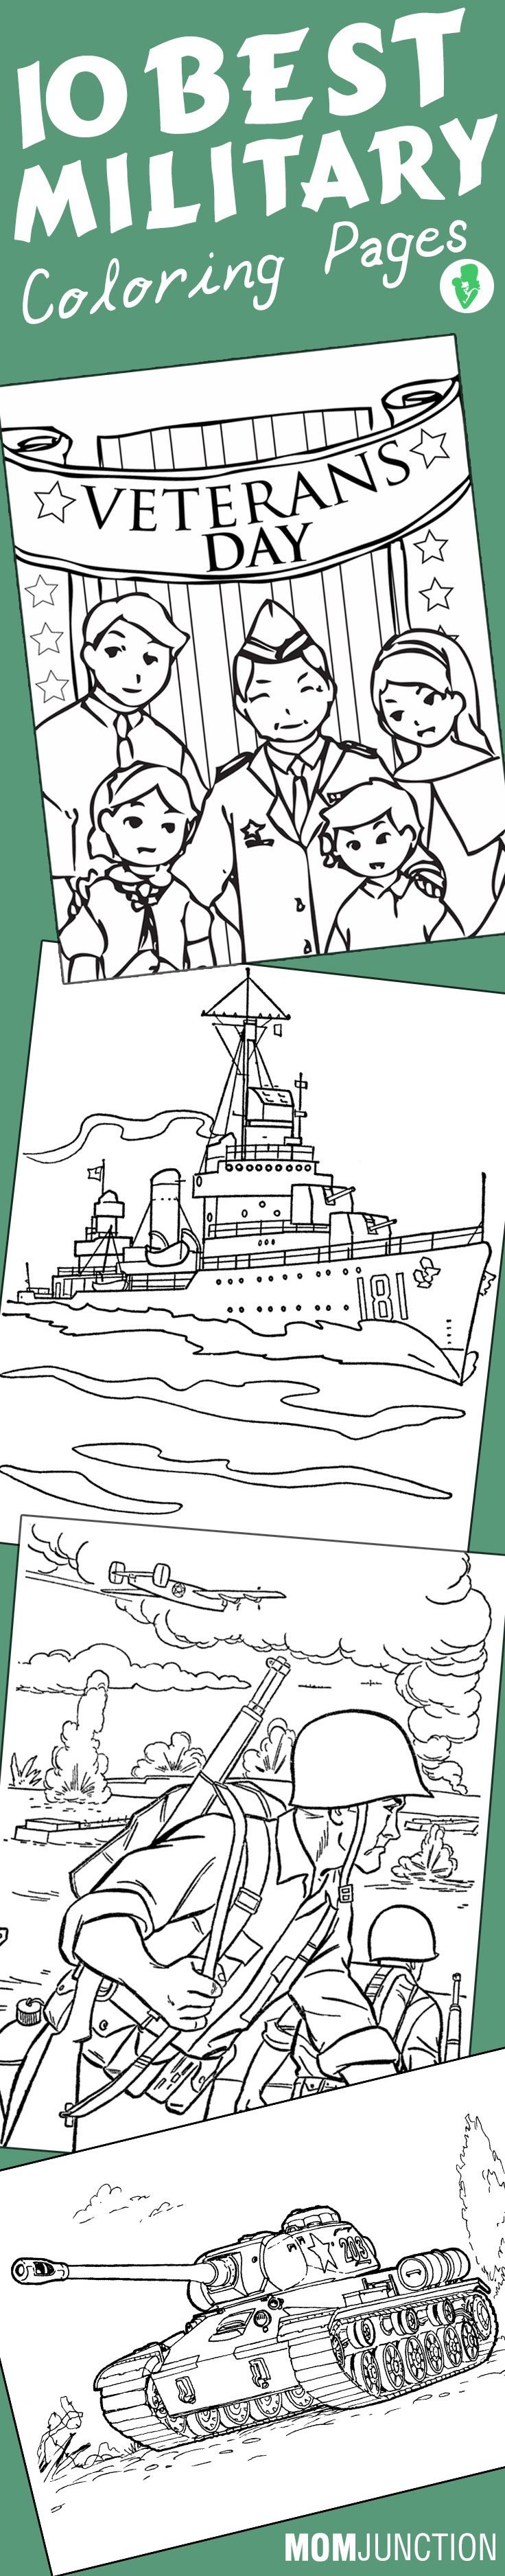 military coloring pages free printables momjunction - Patriotic Military Coloring Pages